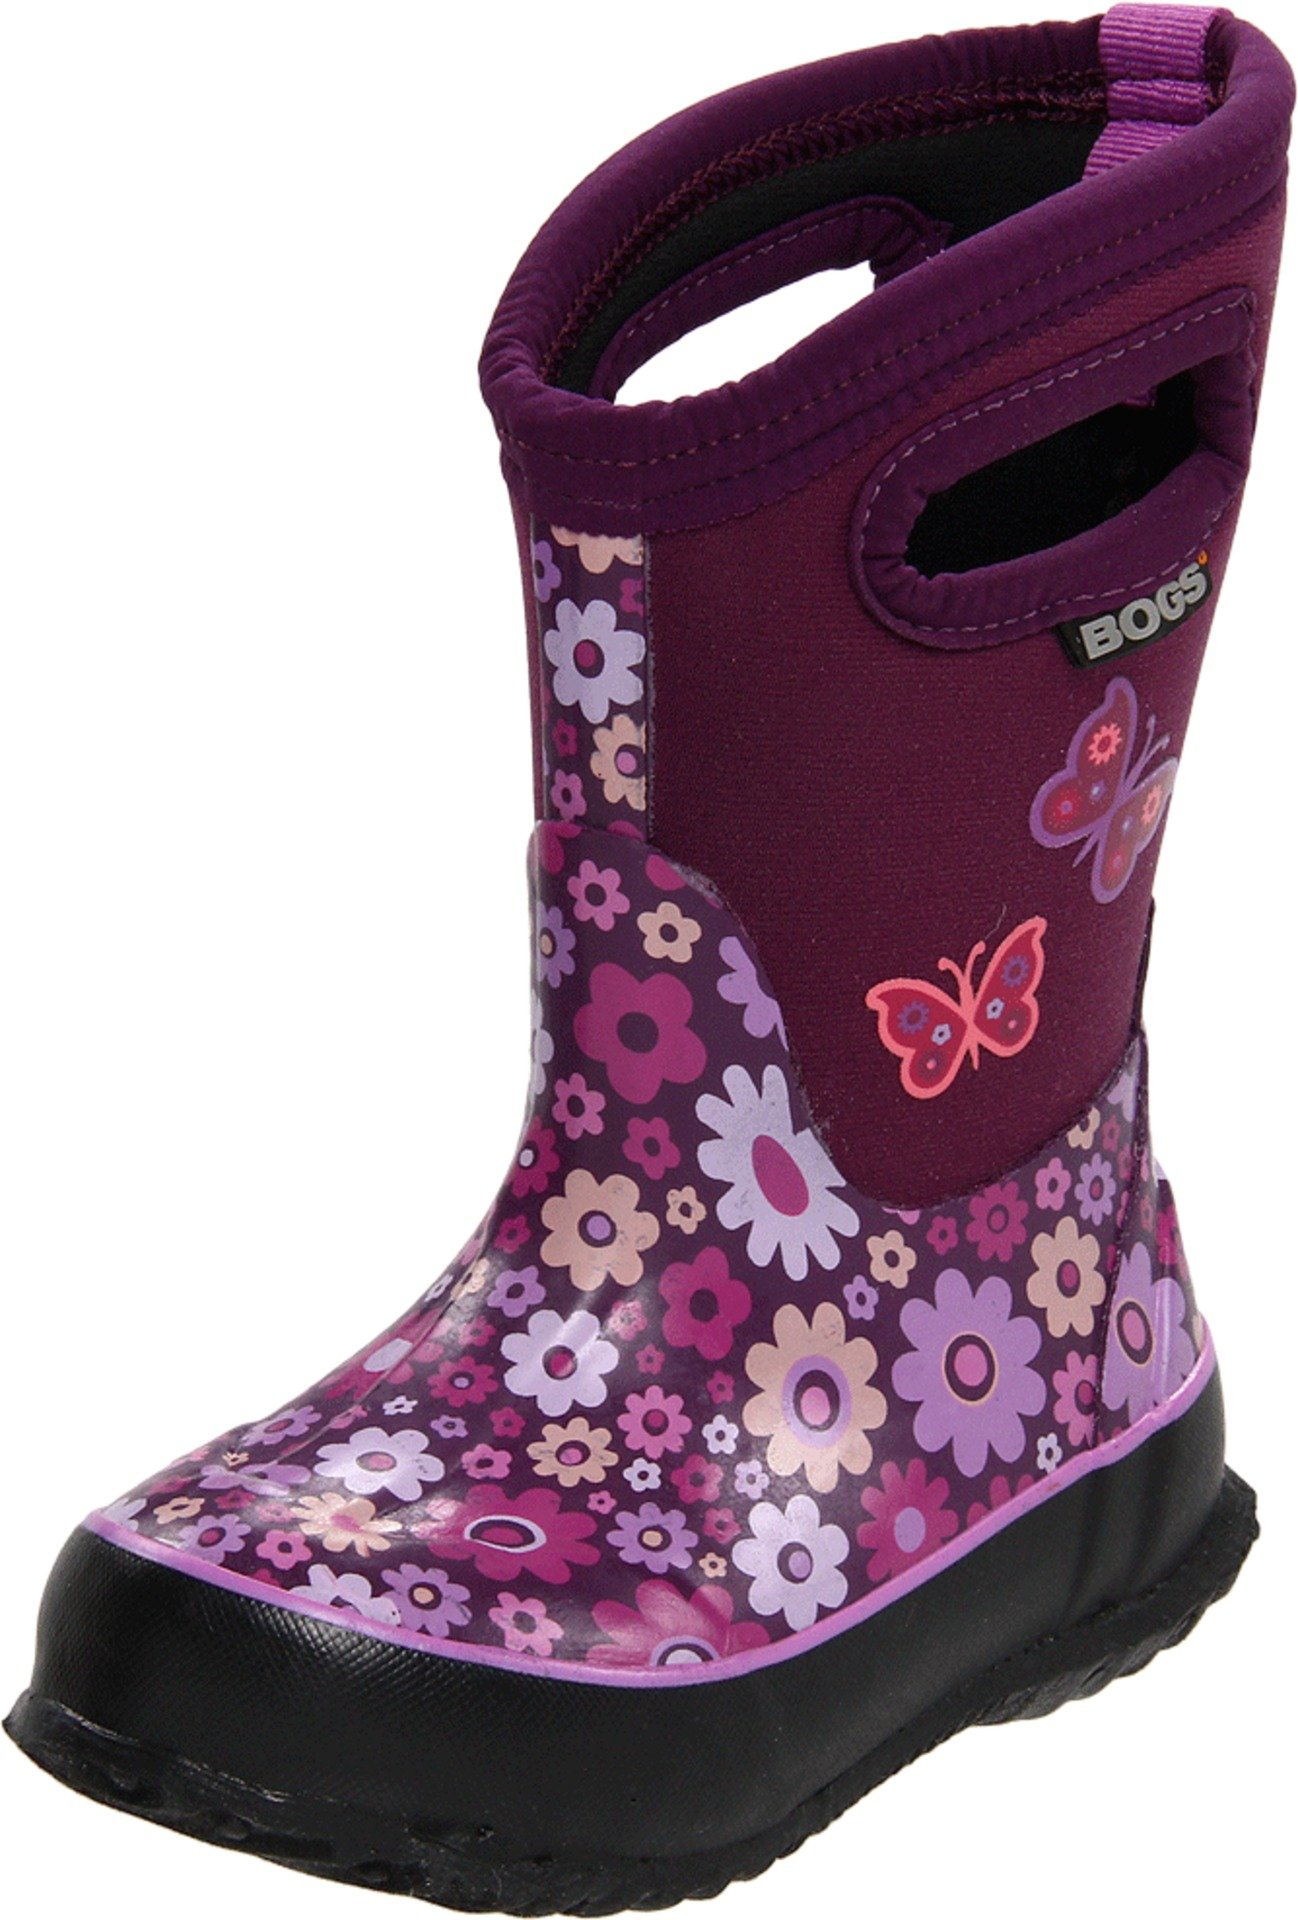 Bogs Classic High Waterproof Insulated Rubber Neoprene Rain Boot, Daisy/Purple/Multi, 6 M US Big Kid